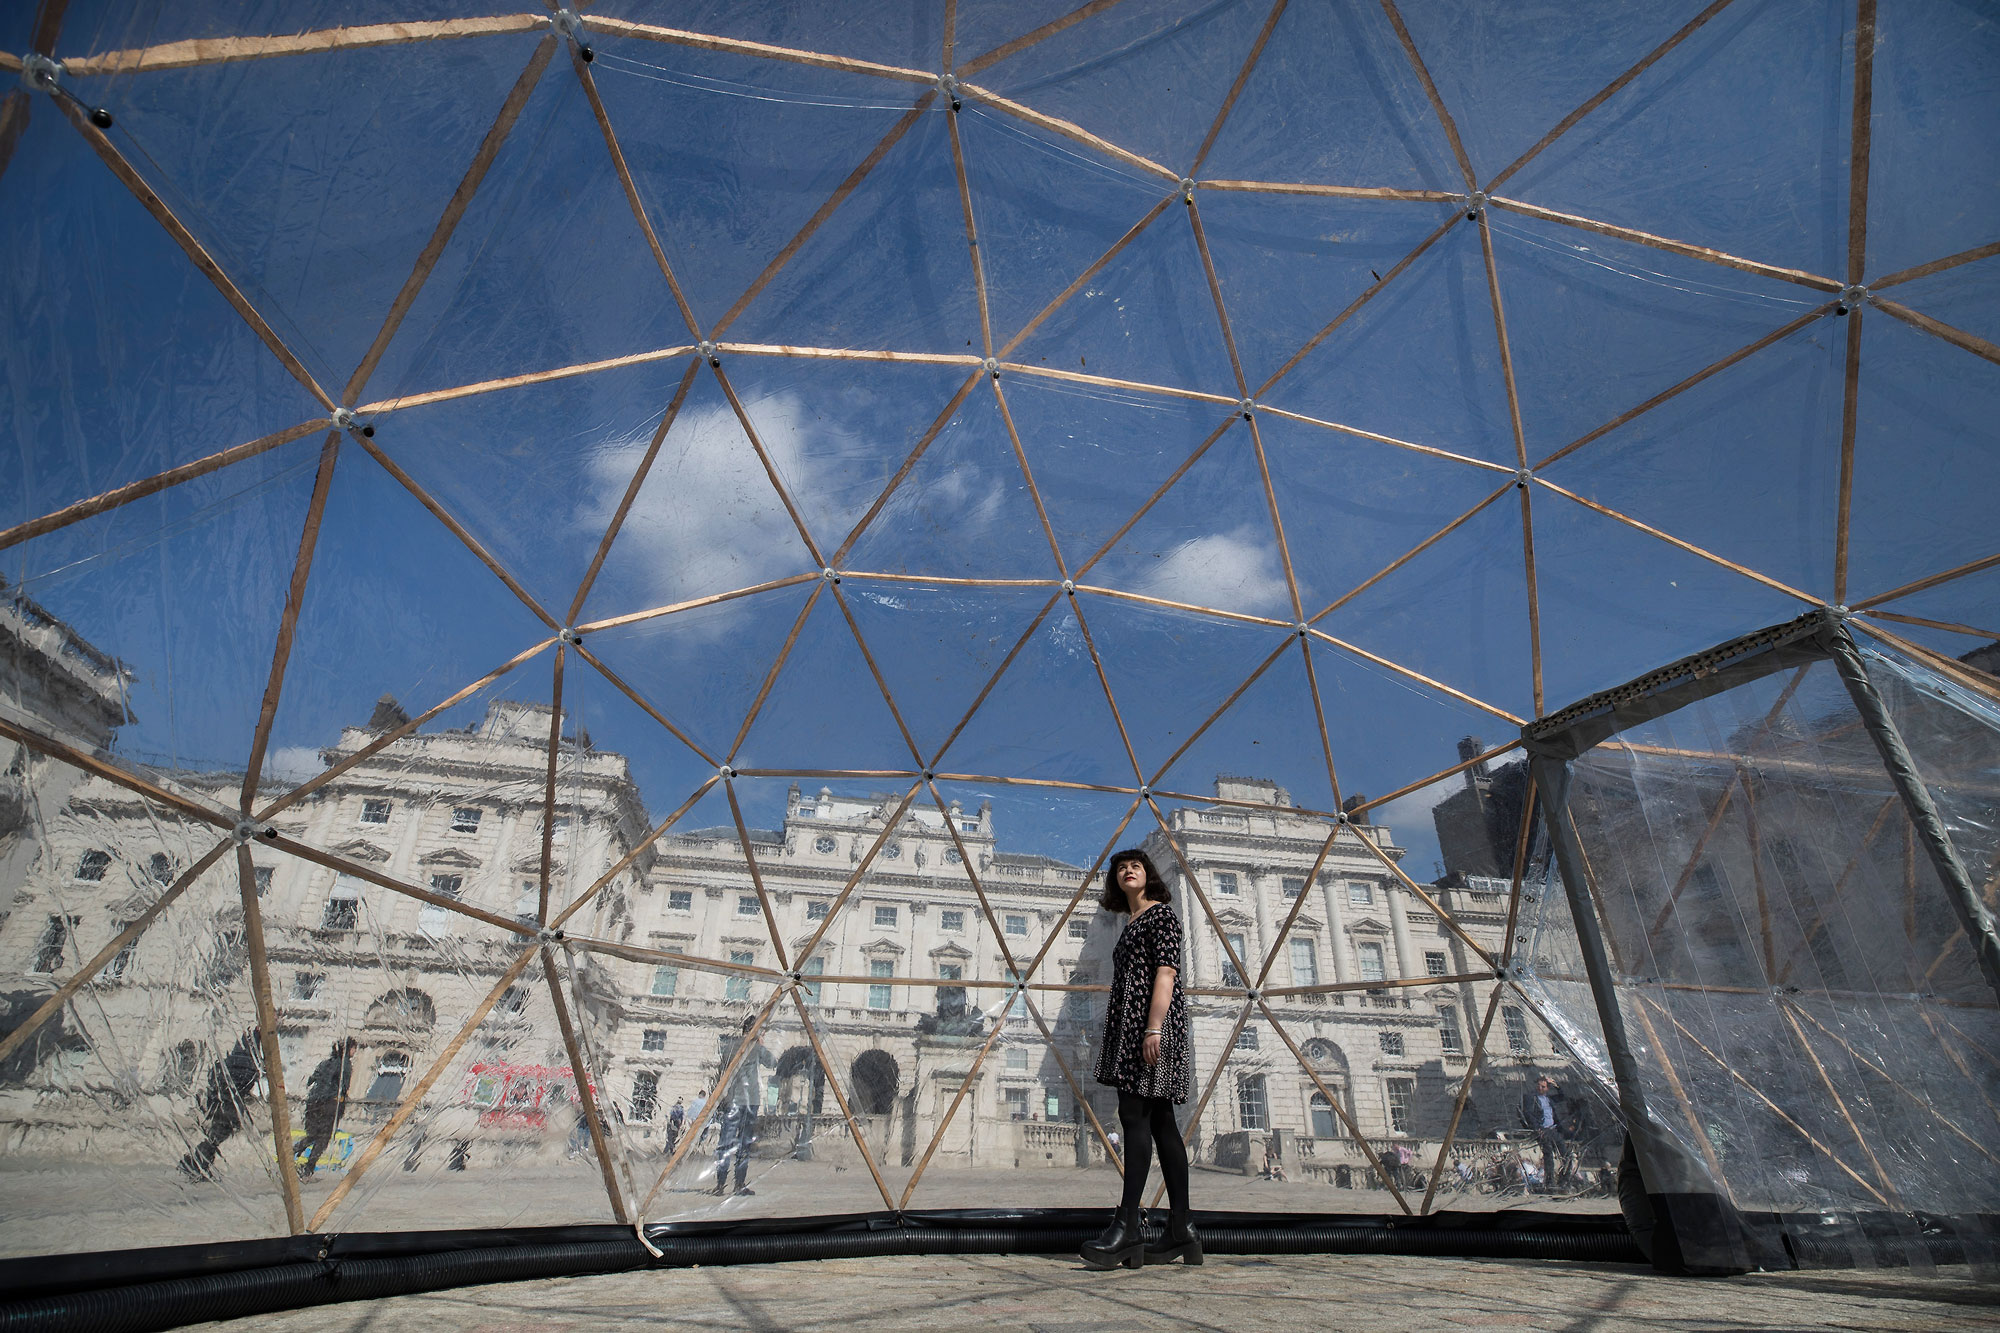 Pollution-Pods-by-Michael-Pinsky-at-Somerset-House-for-Earth-Day-2018-(c)-Peter-Macdiarmid-for-Somerset-House